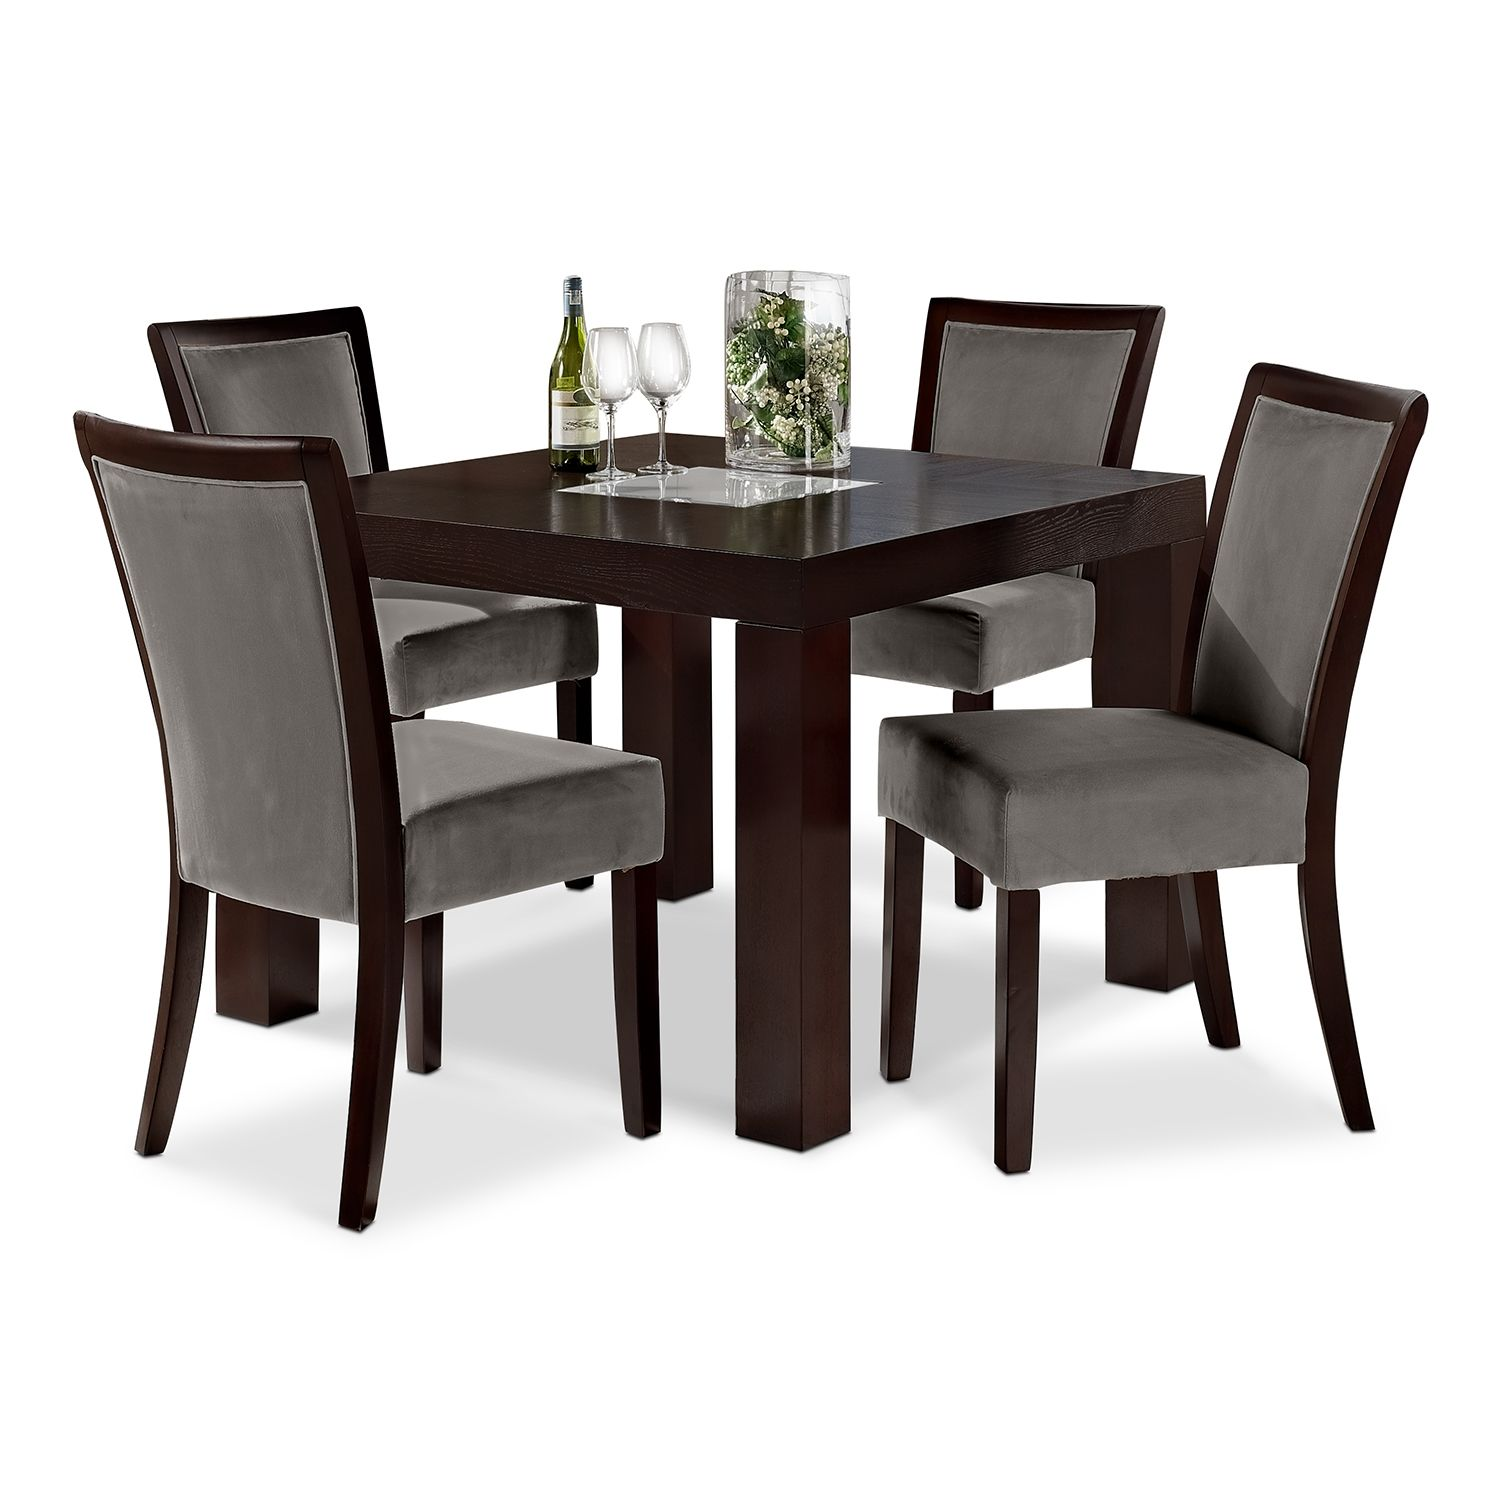 "Tango Gray 5 Pcdinette 42"" Table  Value City Furniture Mesmerizing Discounted Dining Room Sets Design Inspiration"